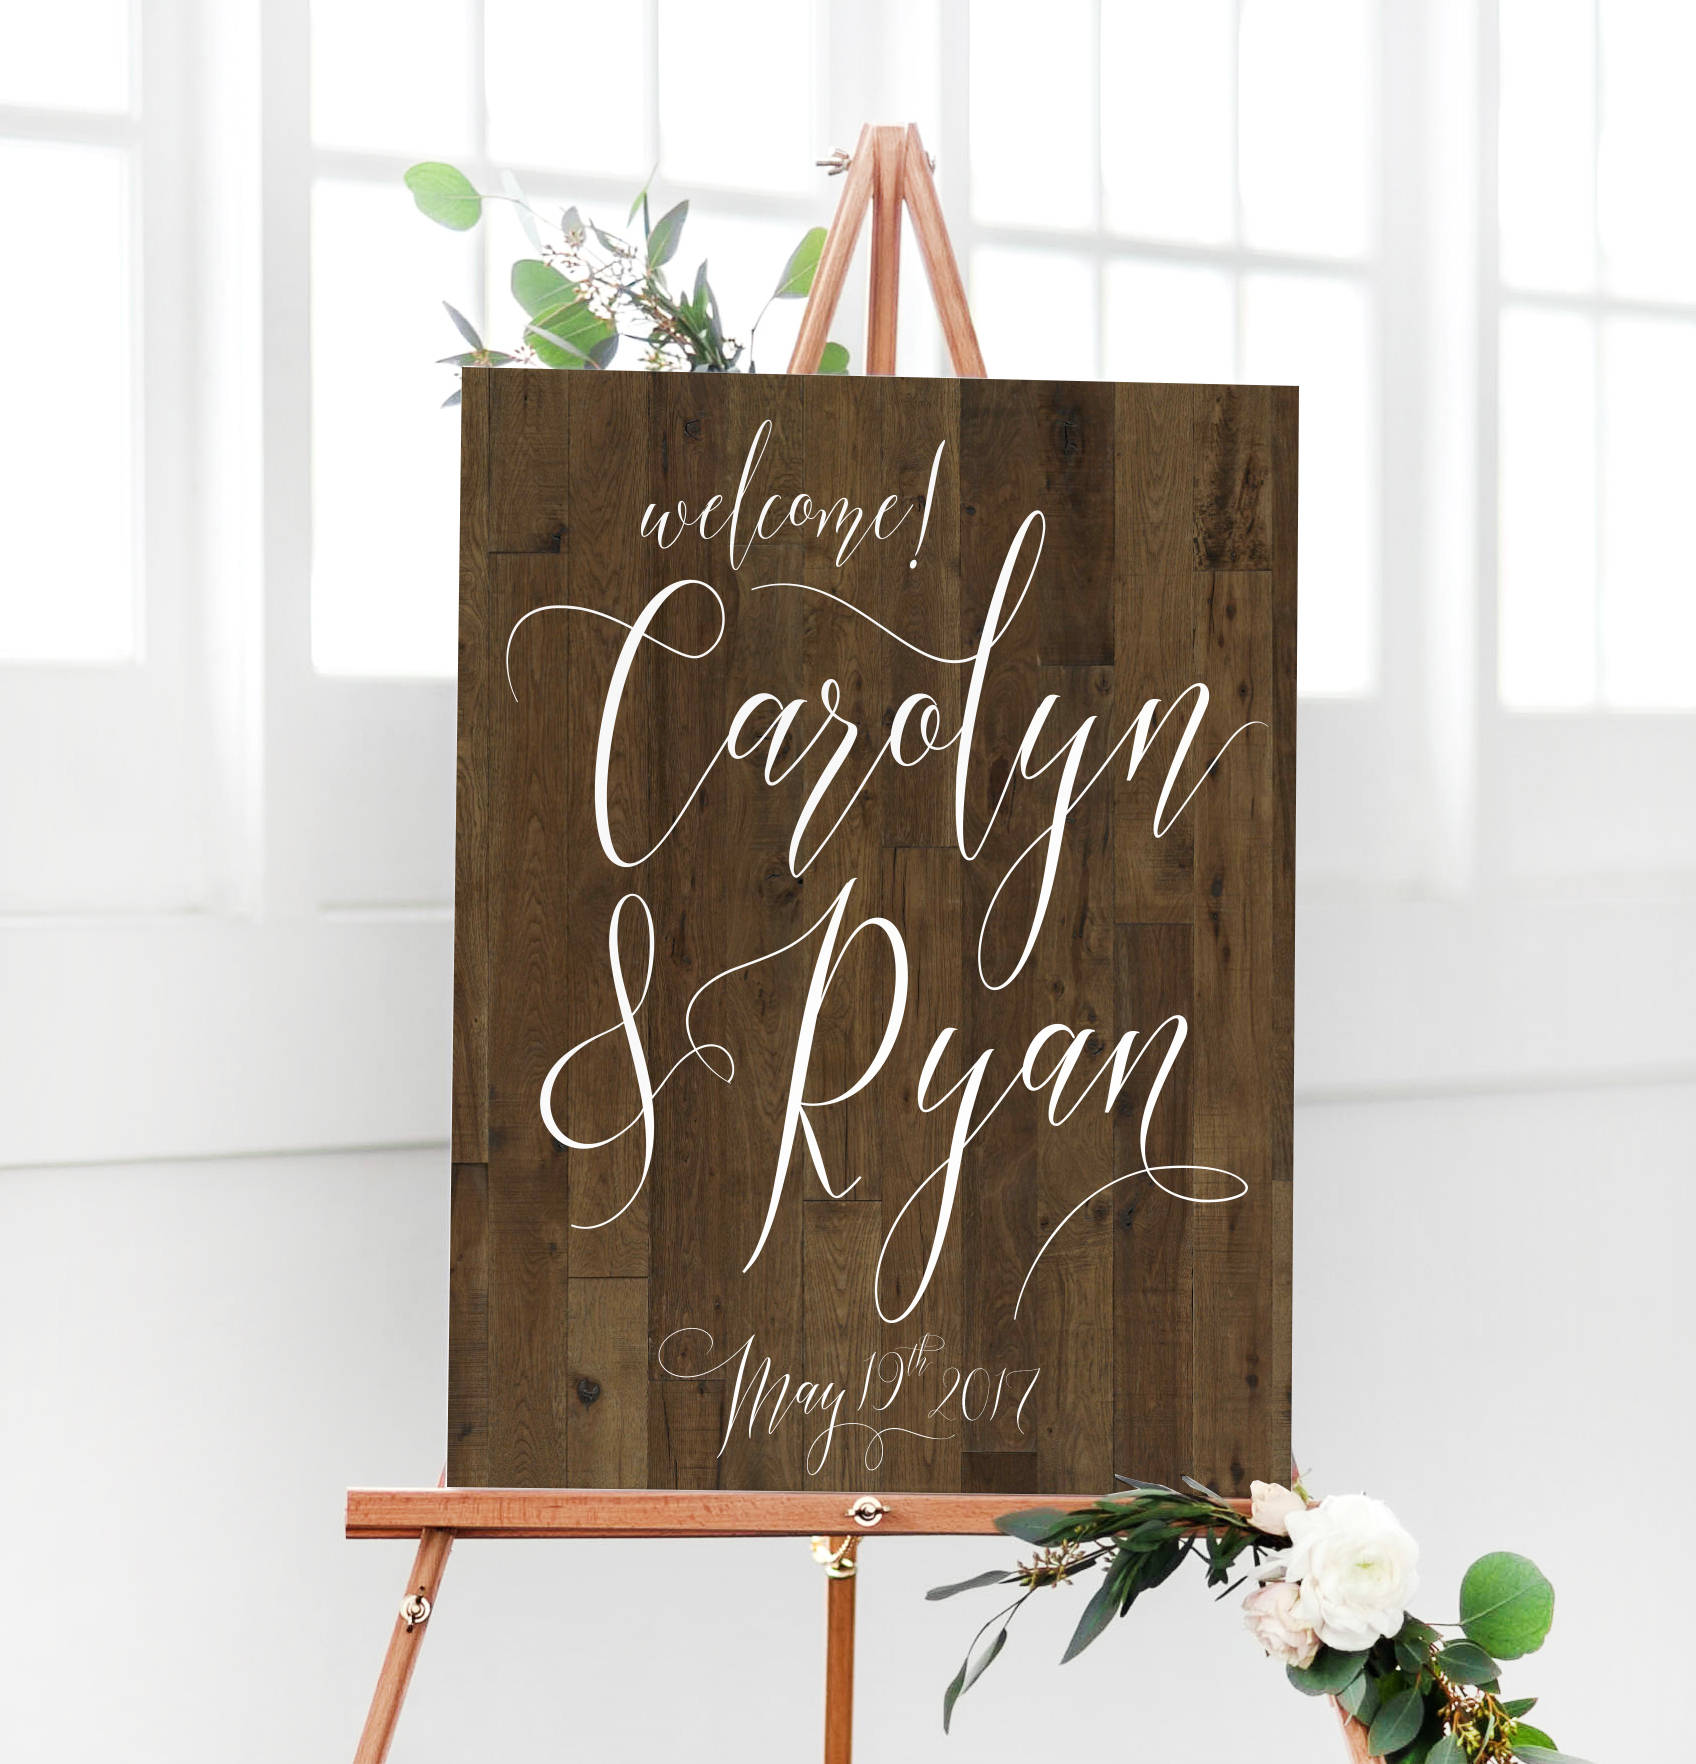 Personalized Faux Wood Wedding Sign for the Reception Entrance - greet your wedding guests with a statement piece that makes them say wow. From Miss Design Berry - as seen on www.BrendasWeddingBlog.com